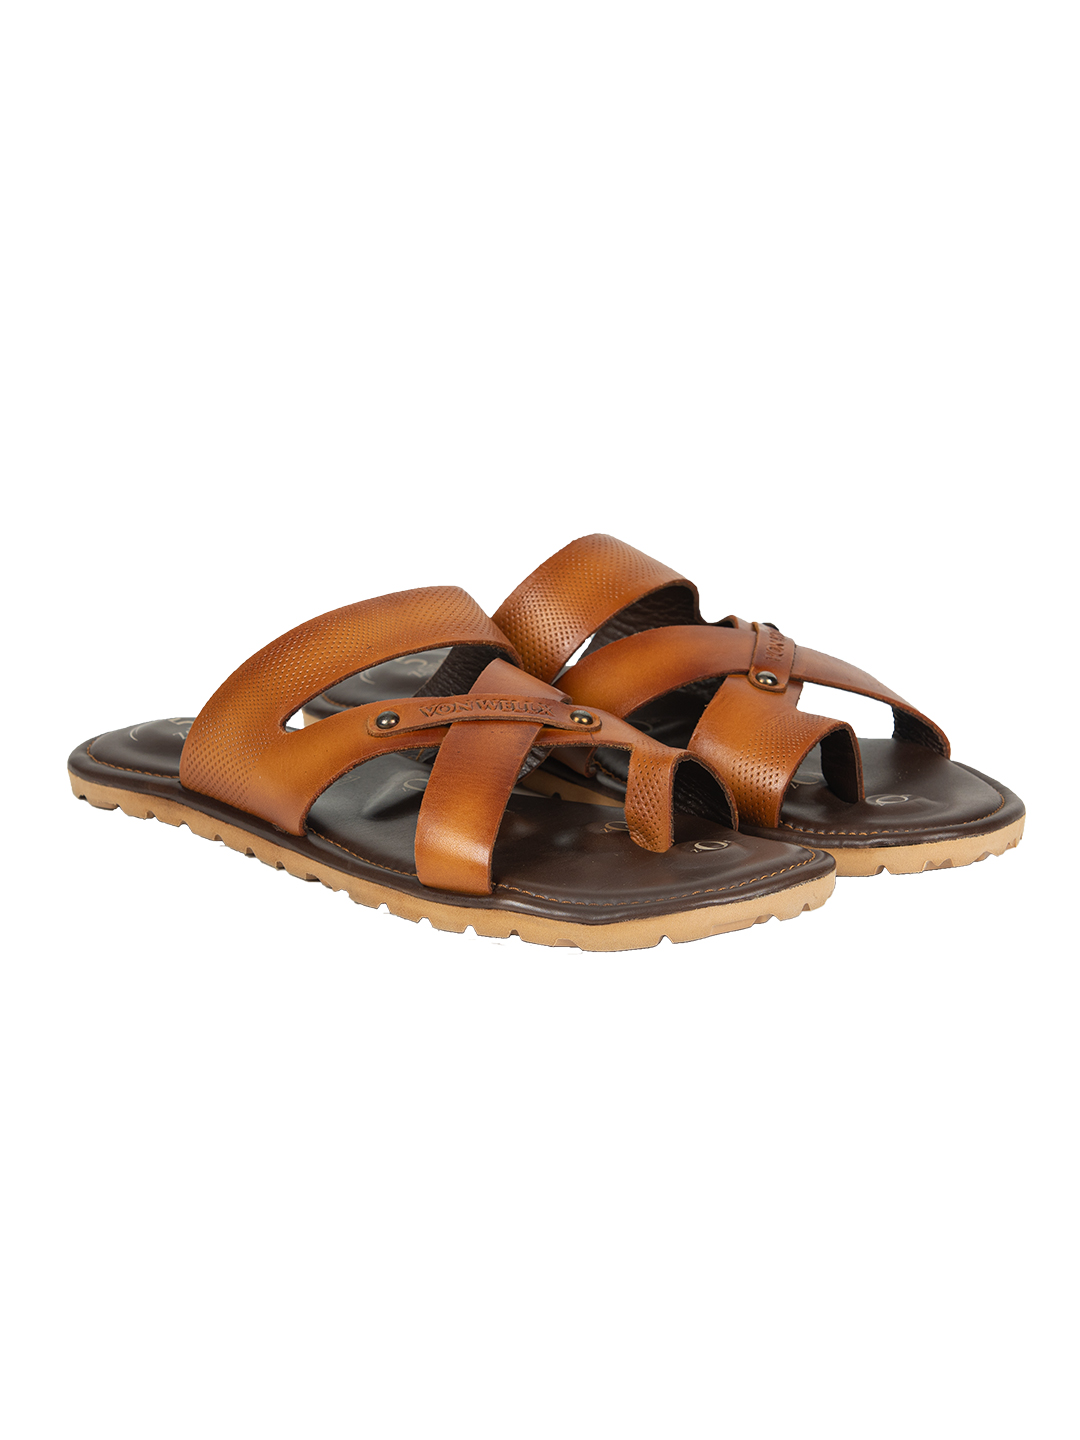 Buy VON WELLX GERMANYCOMFORT TAN ELIJAH SLIPPERS In Delhi